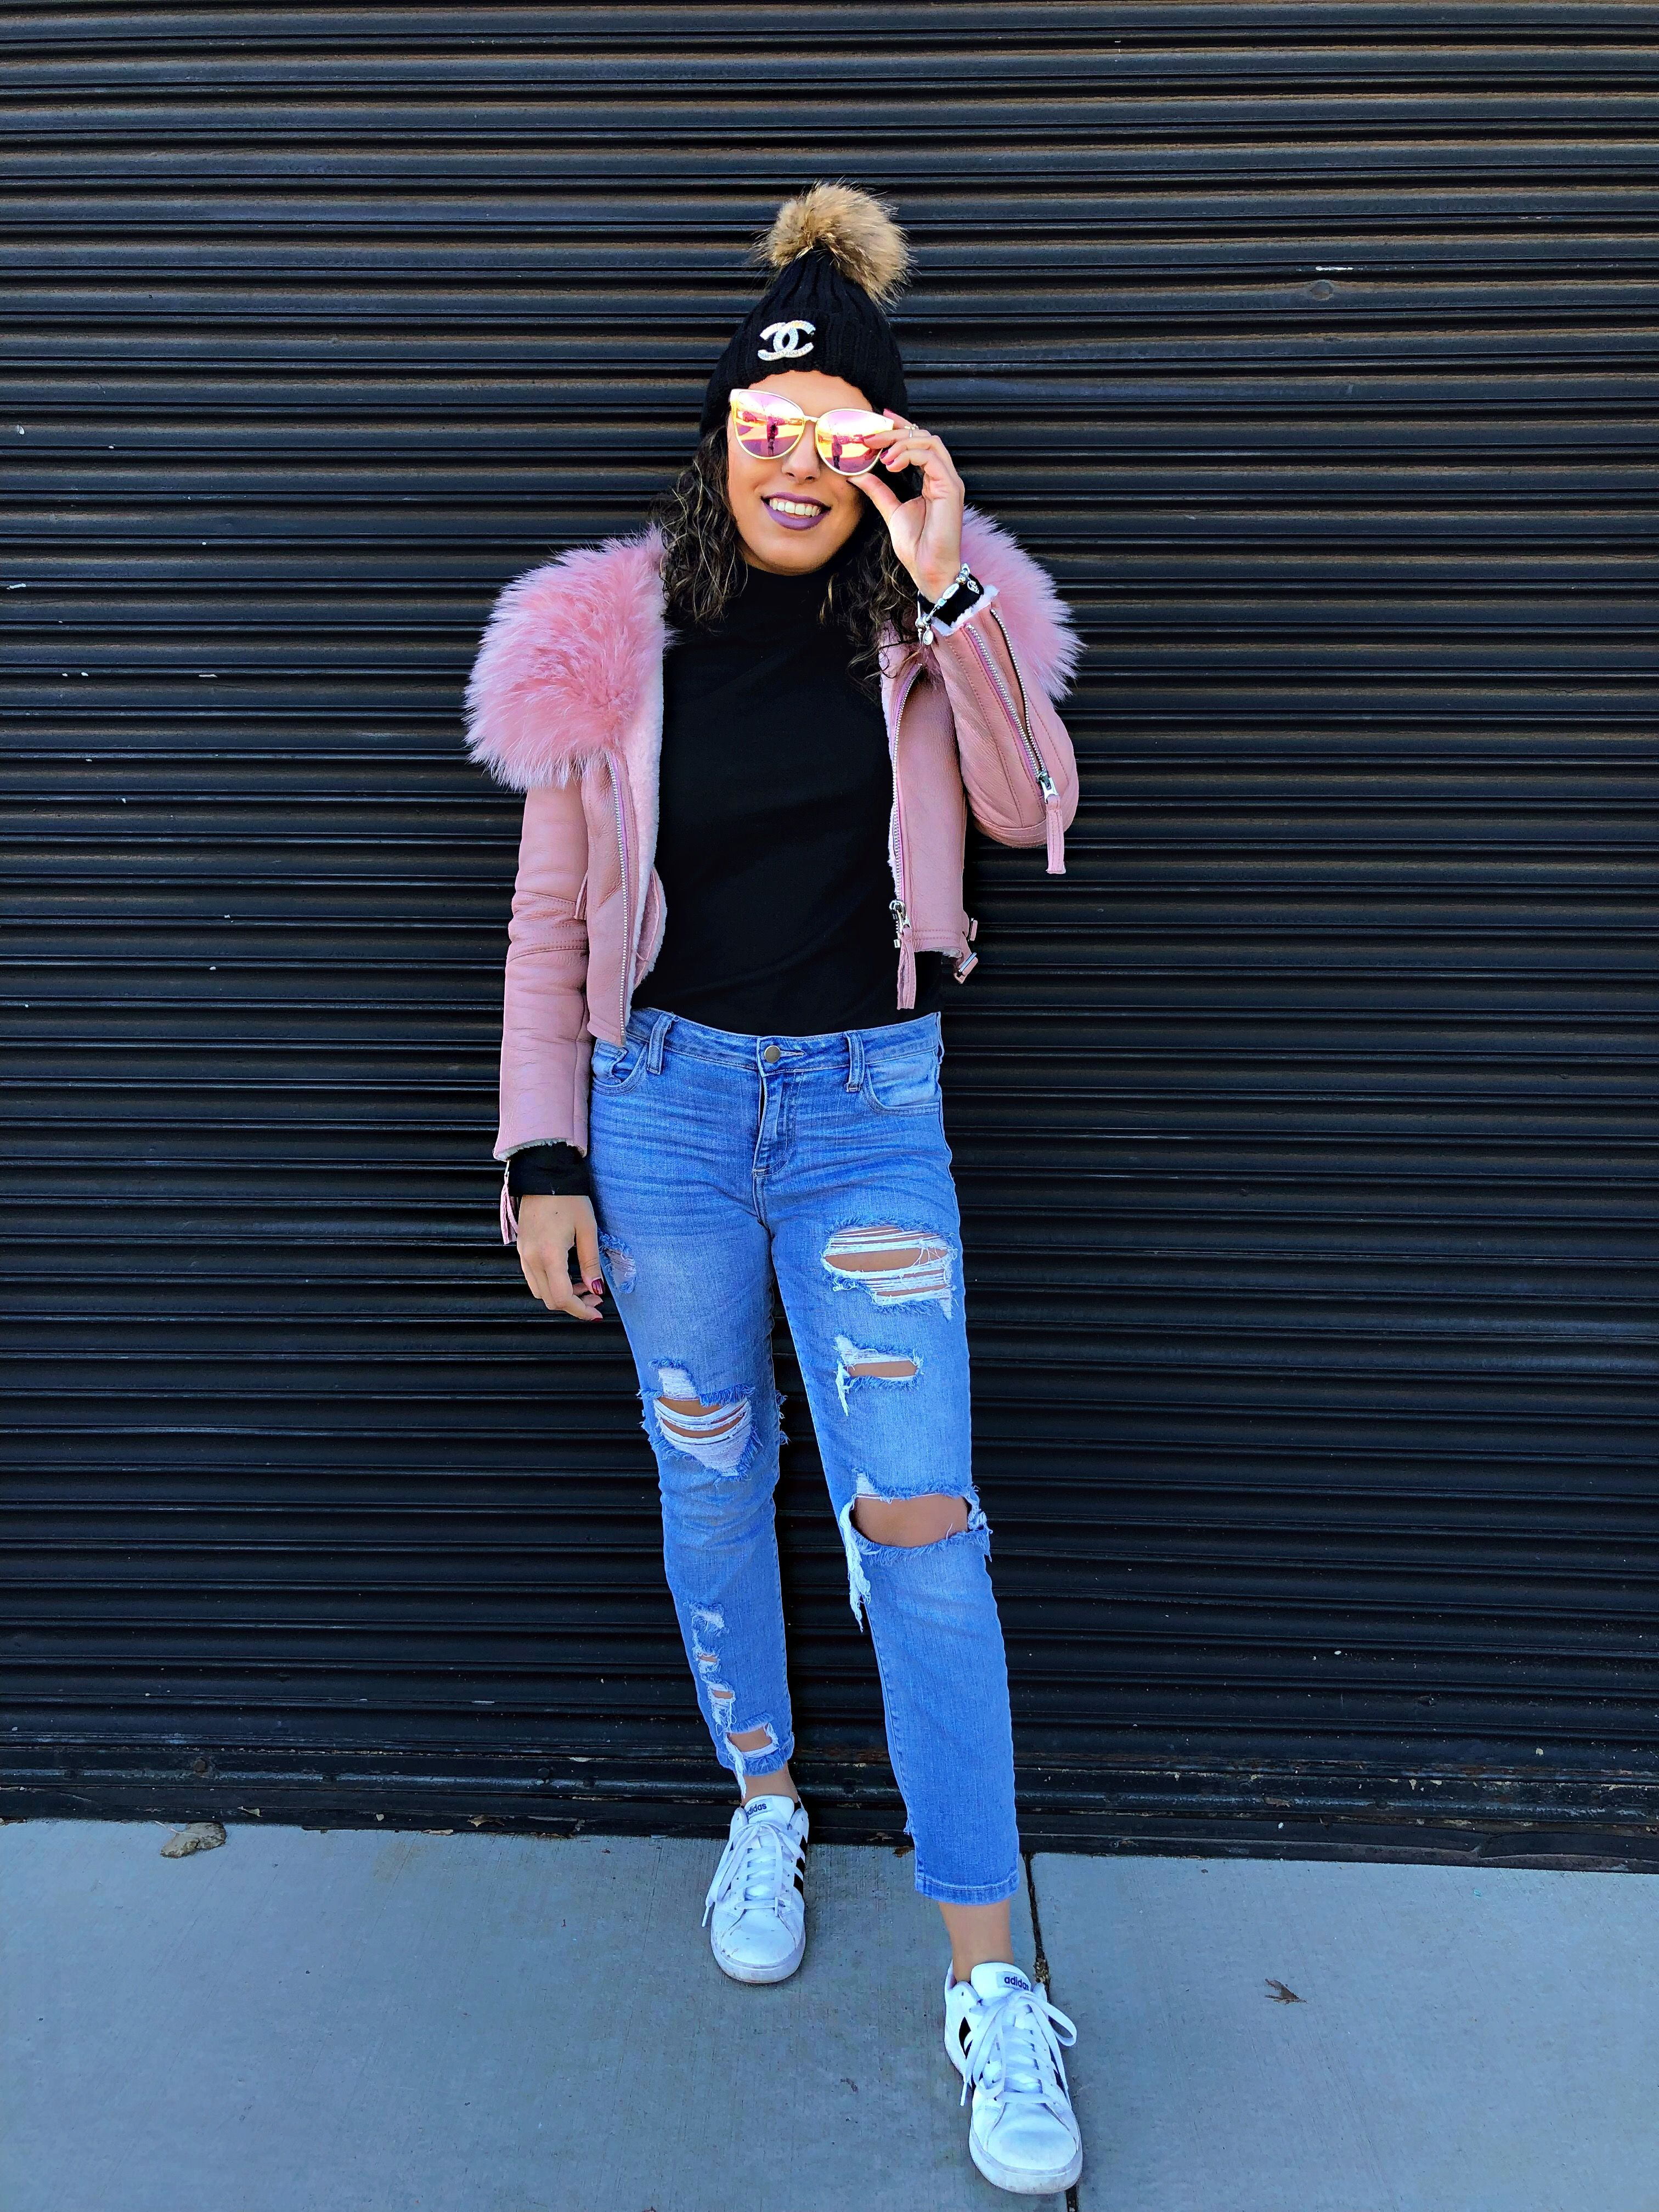 Winter Coats Winter Coats For Women Winter Coats For Girls Pink Fur Coats Pink Leather Jacket Pi Winter Outfits Winter Coats Women Distressed Jeans Outfit [ 4032 x 3024 Pixel ]